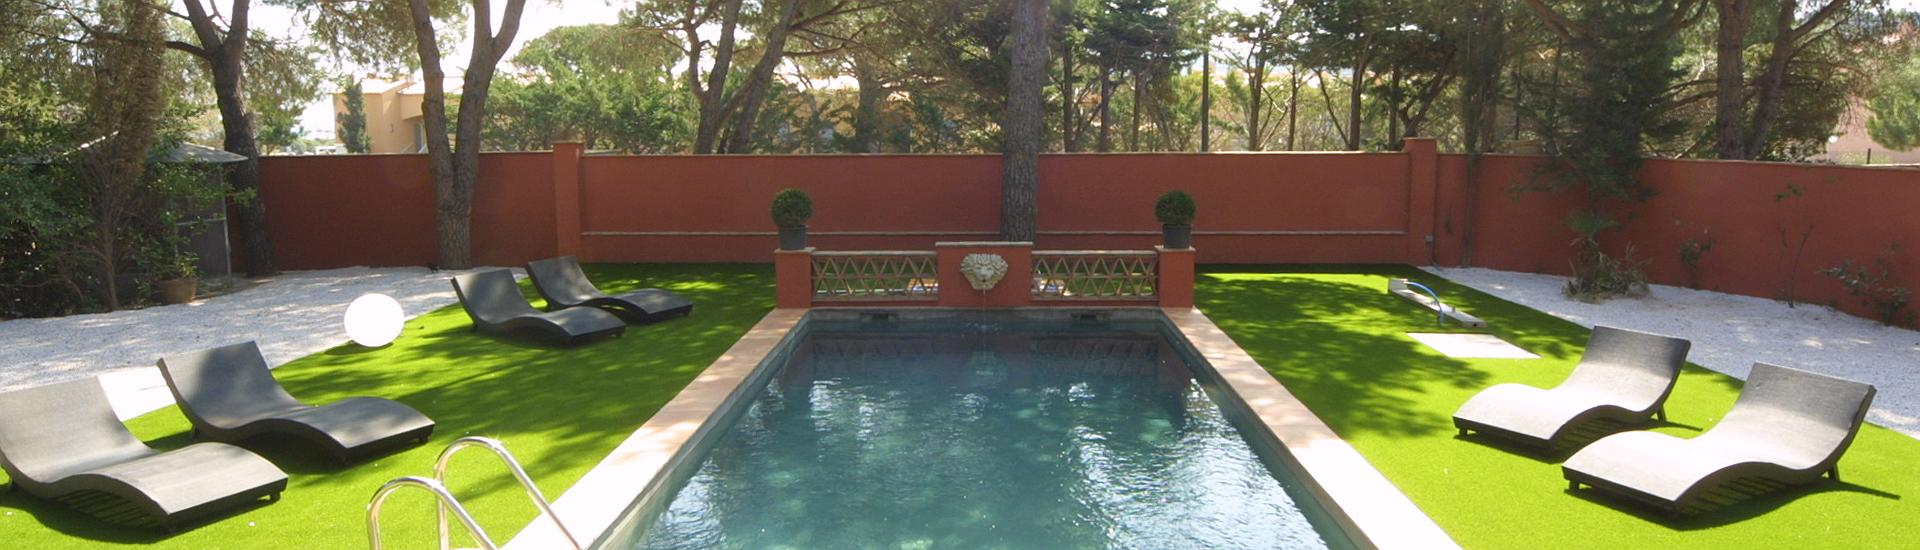 private garden and swimmingpool pool